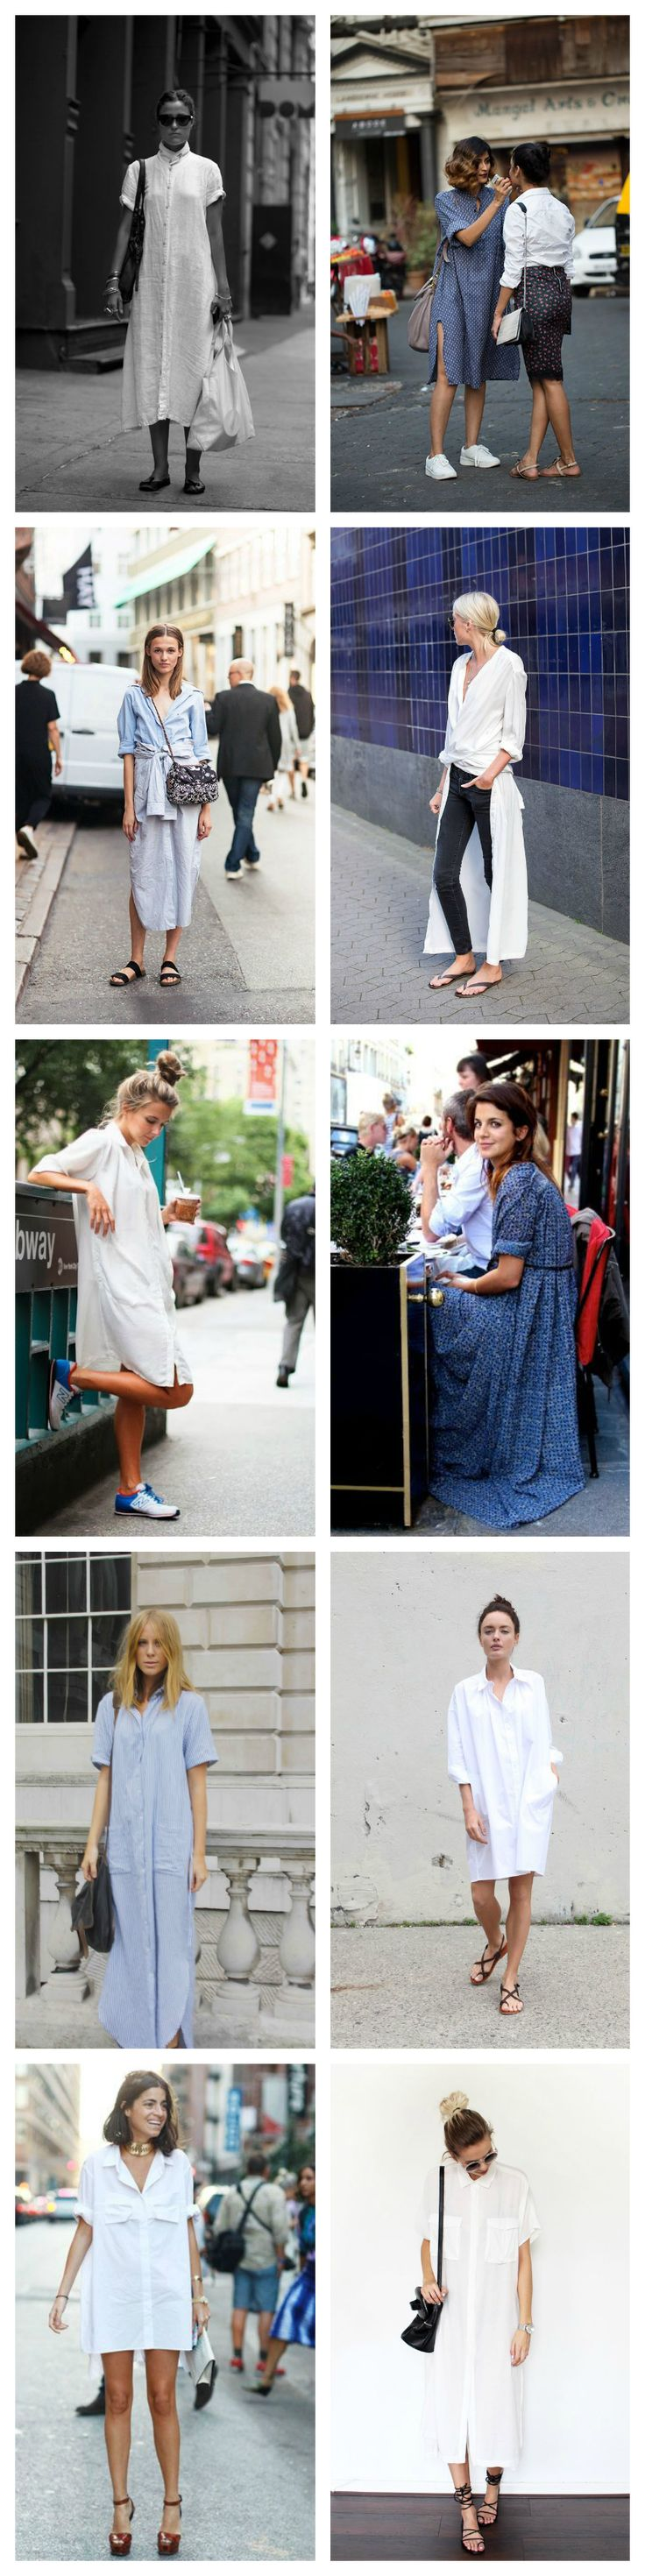 I would wear that...the shirtdress. - Bliss